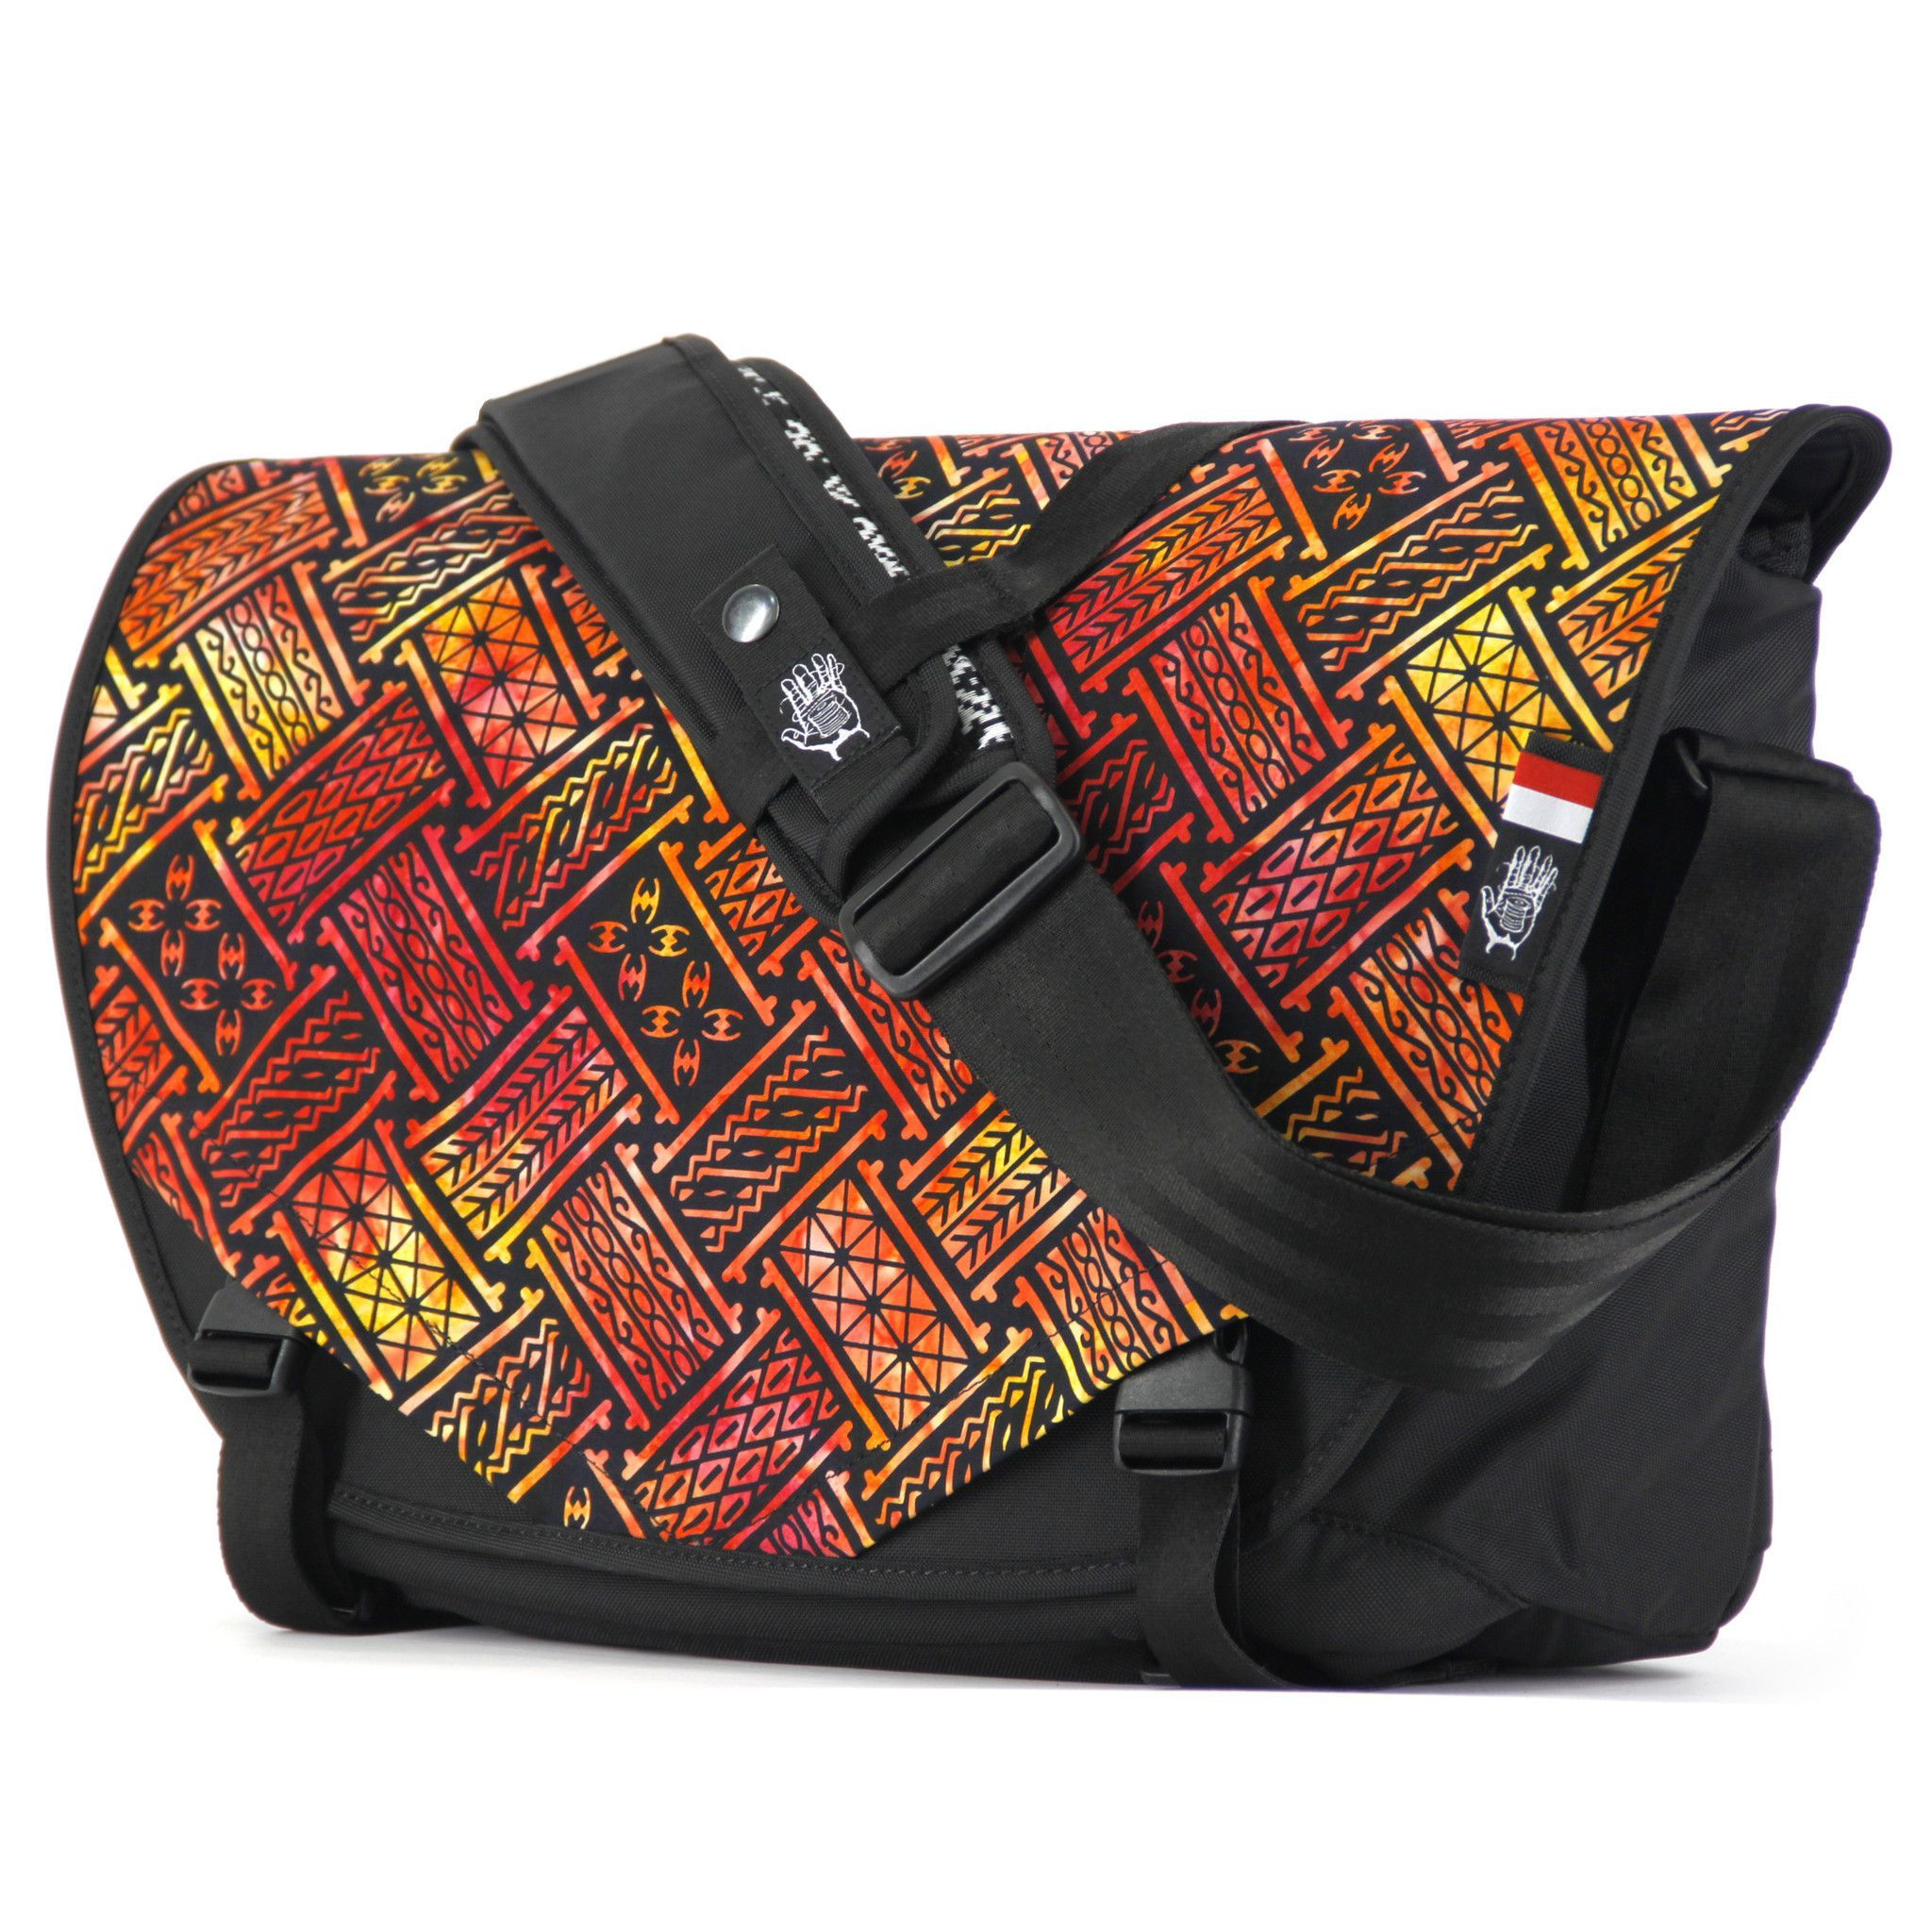 Indonesia 7 Acaat Messenger Bag Laptop compartment is